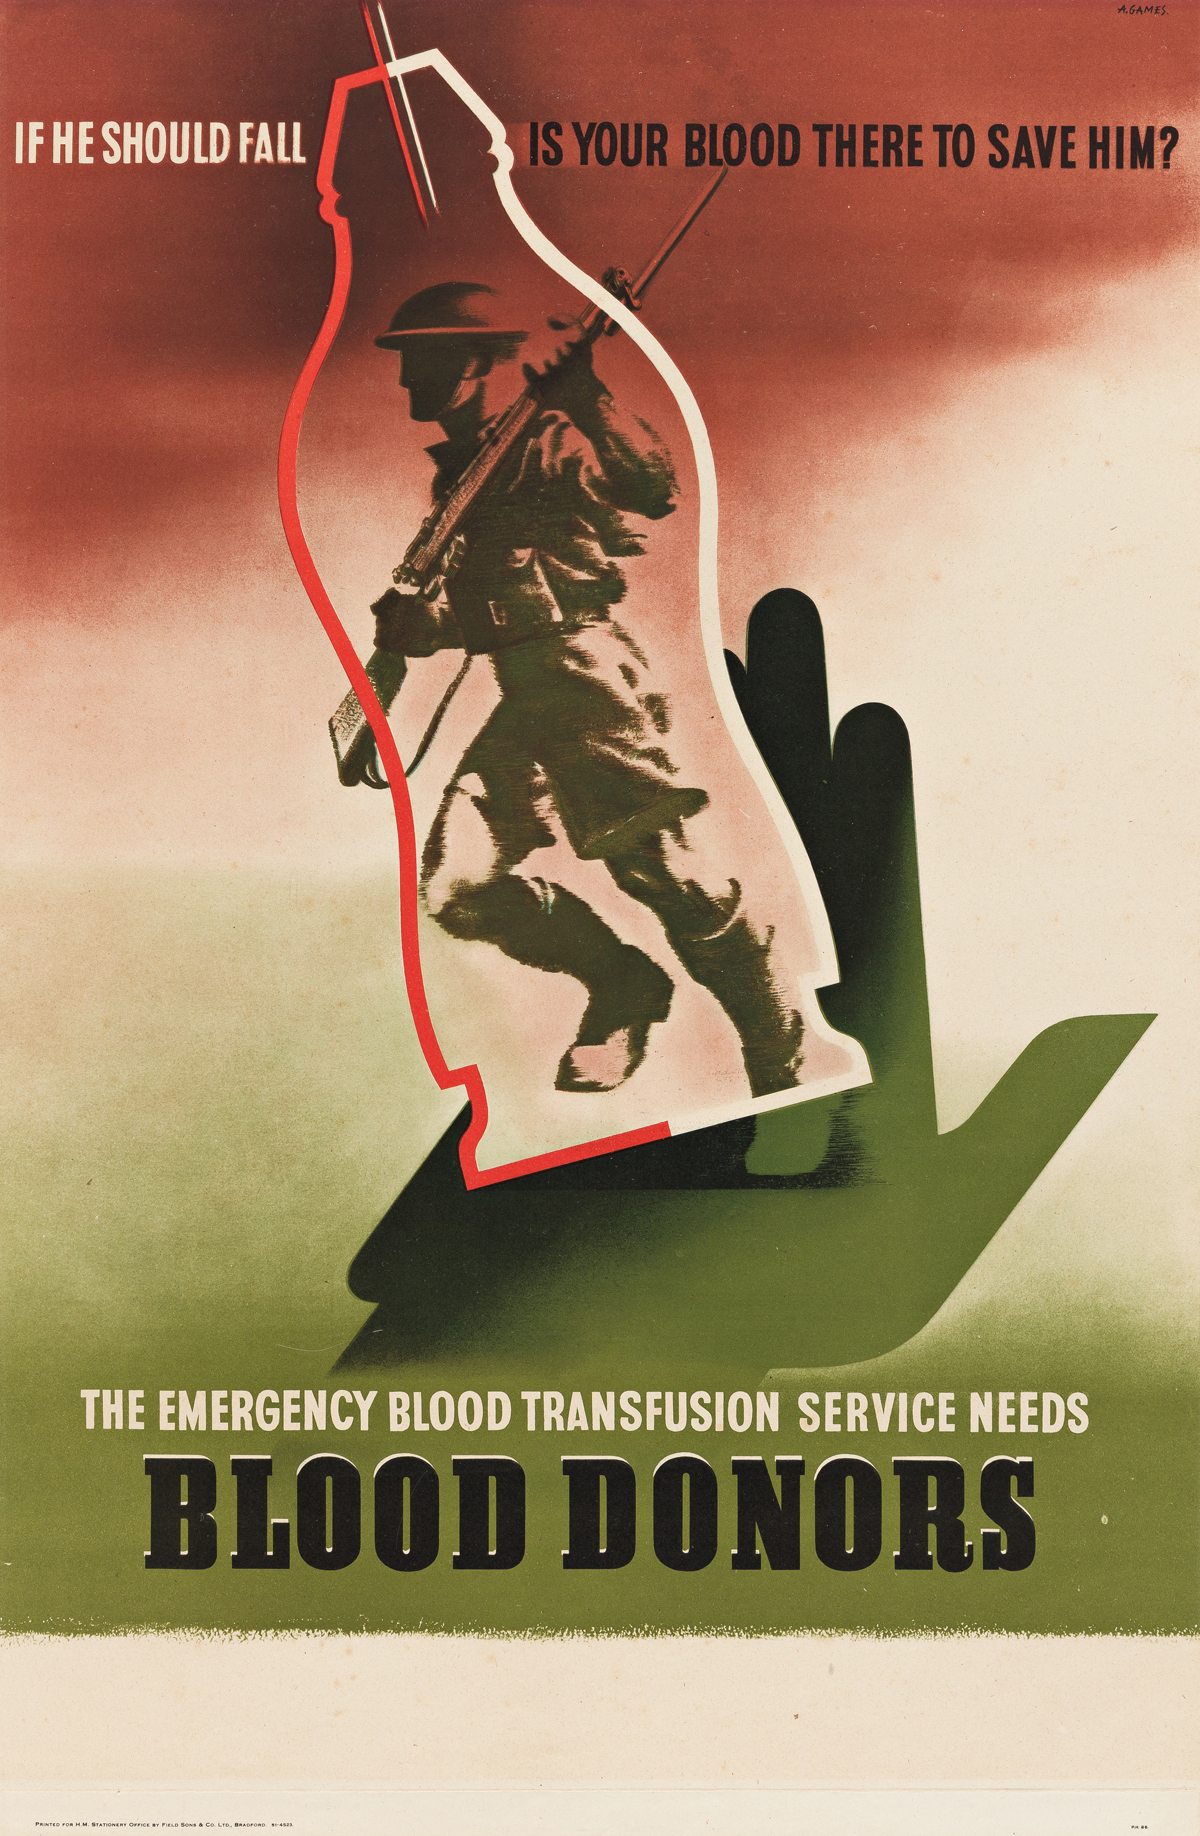 ABRAM GAMES (1914-1996).  THE EMERGENCY BLOOD TRANSFUSION SERVICE NEEDS BLOOD DONORS. 1943. 29¼x19¼ inches, 74¼x49¾ cm. Field Sons & Co